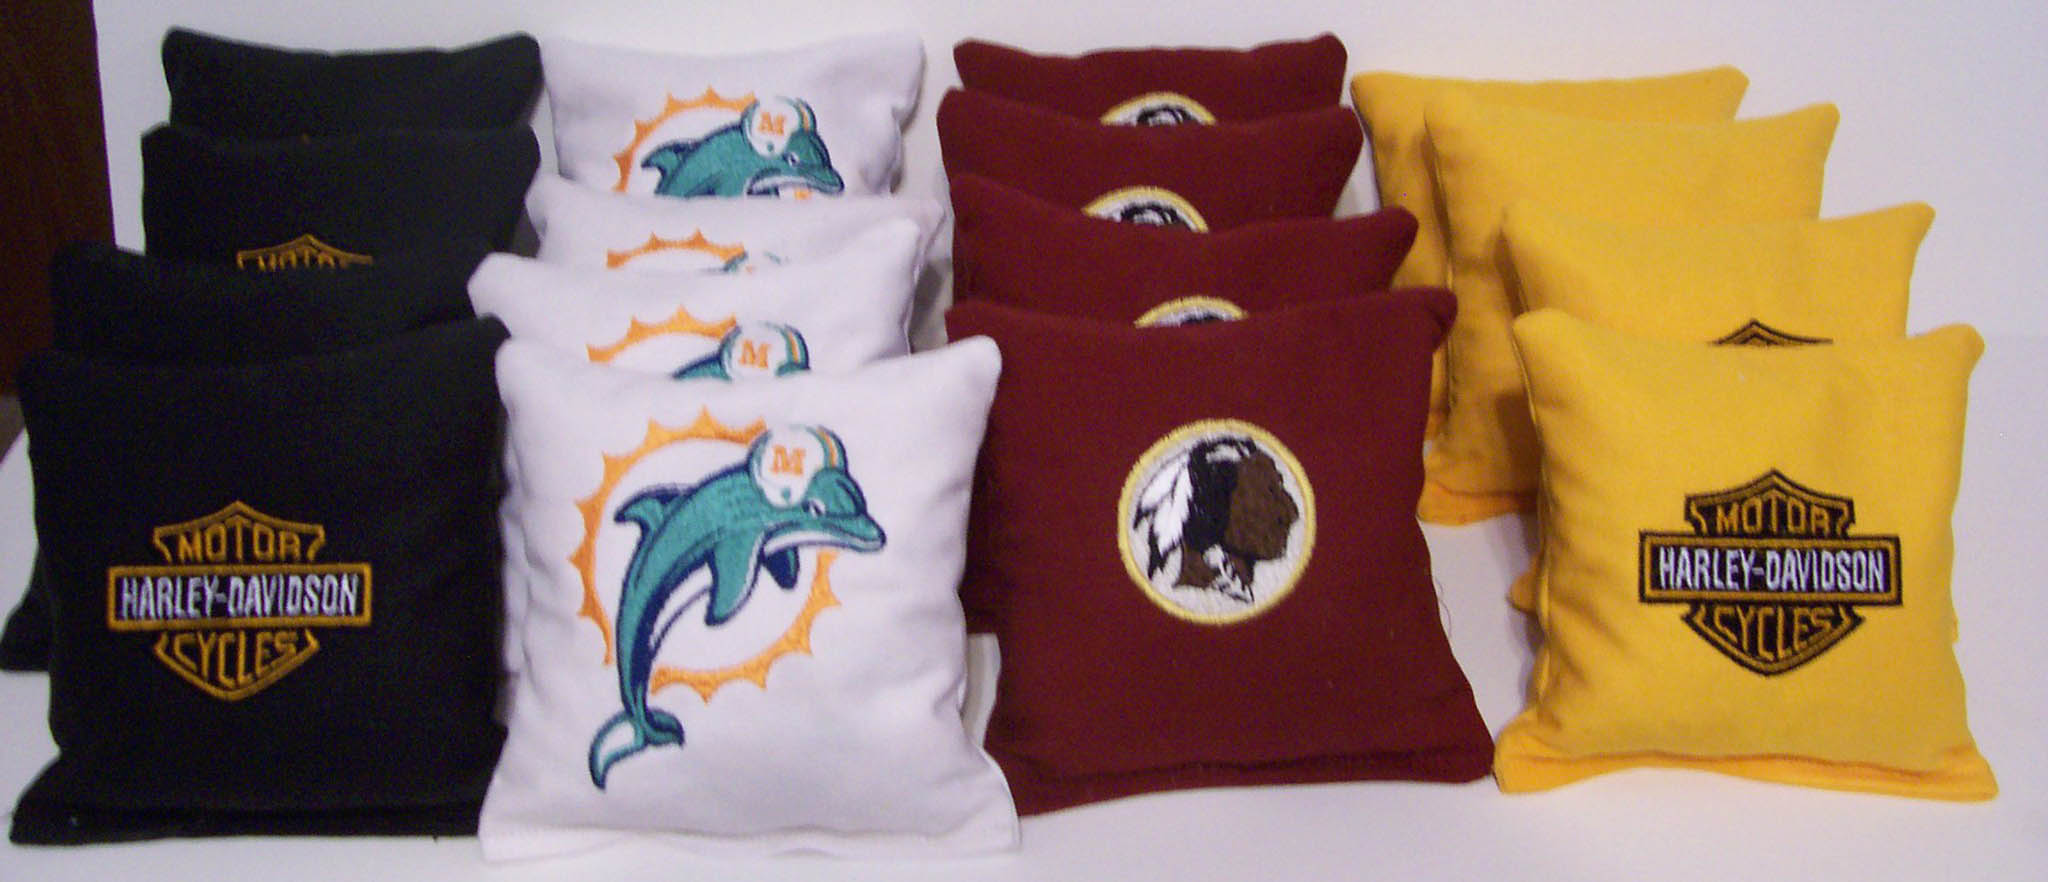 Different designs on pillowcases1